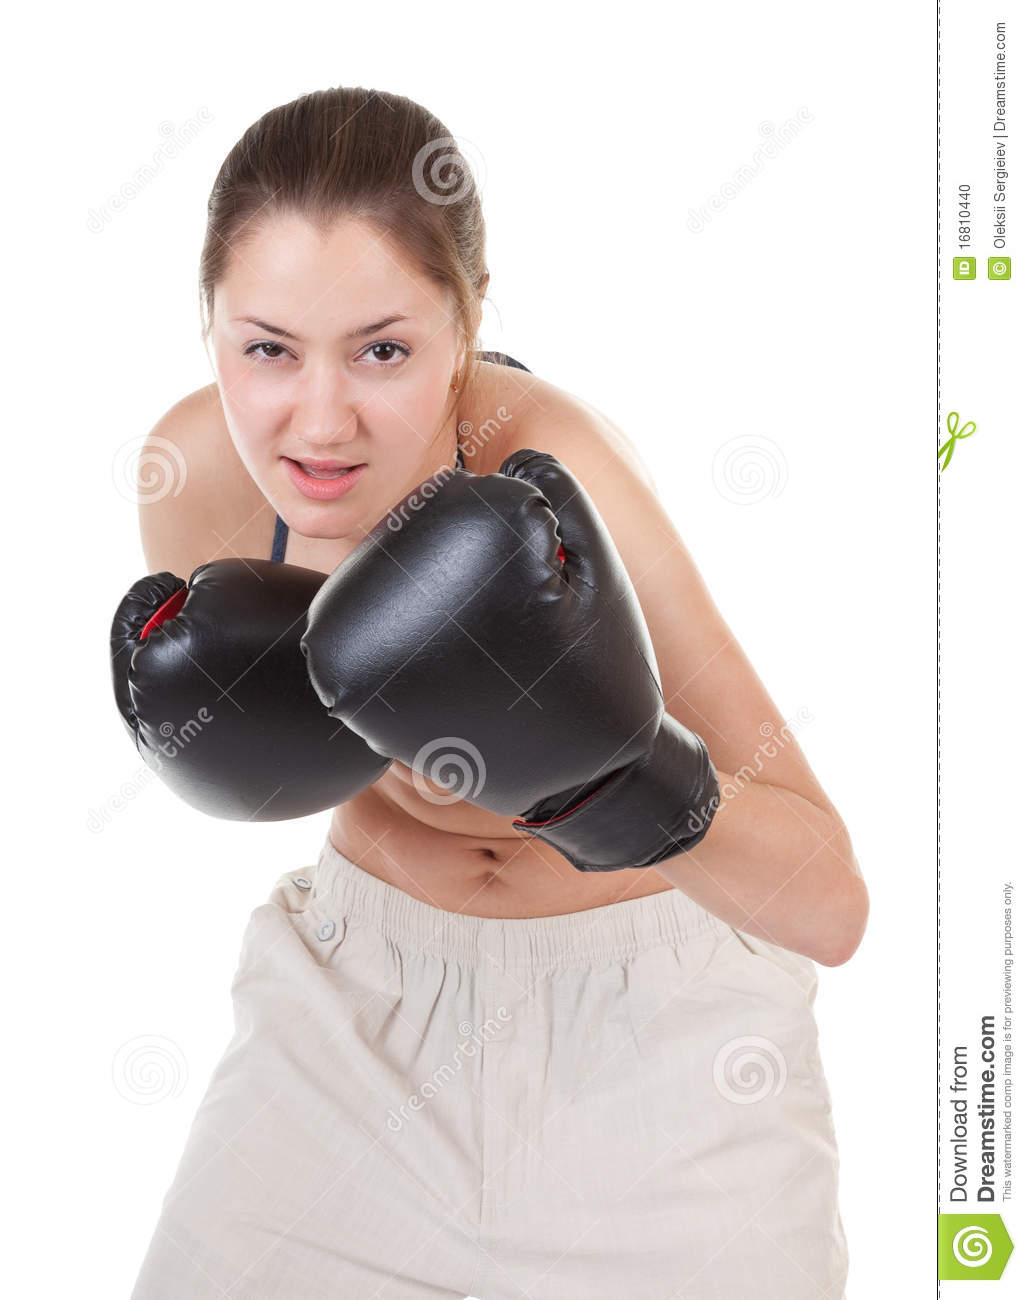 Leather Gloves Woman Stock Photos and Images